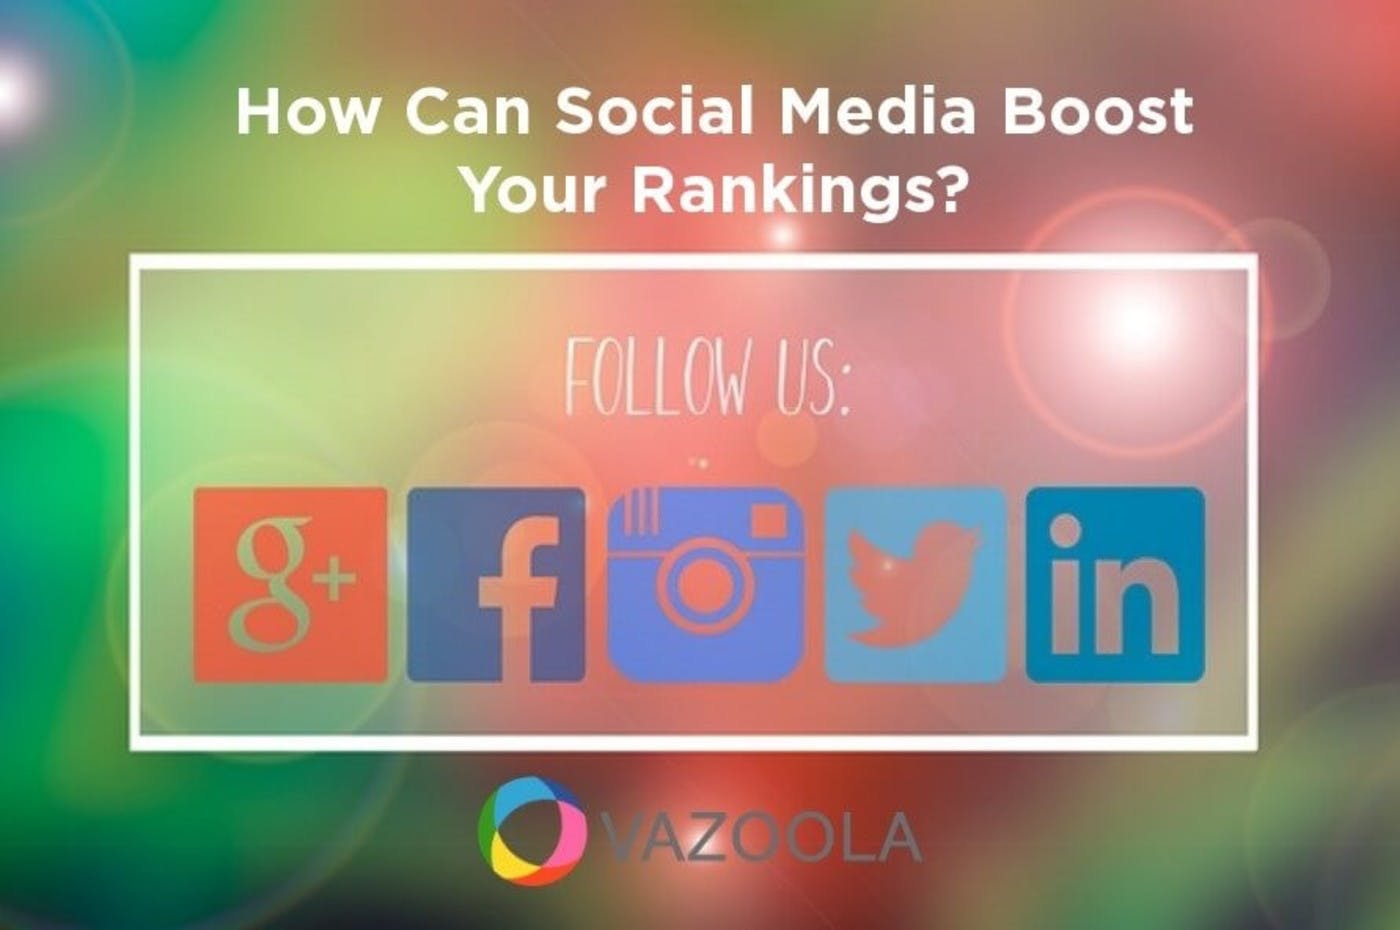 How Can Social Media Boost Your Rankings?